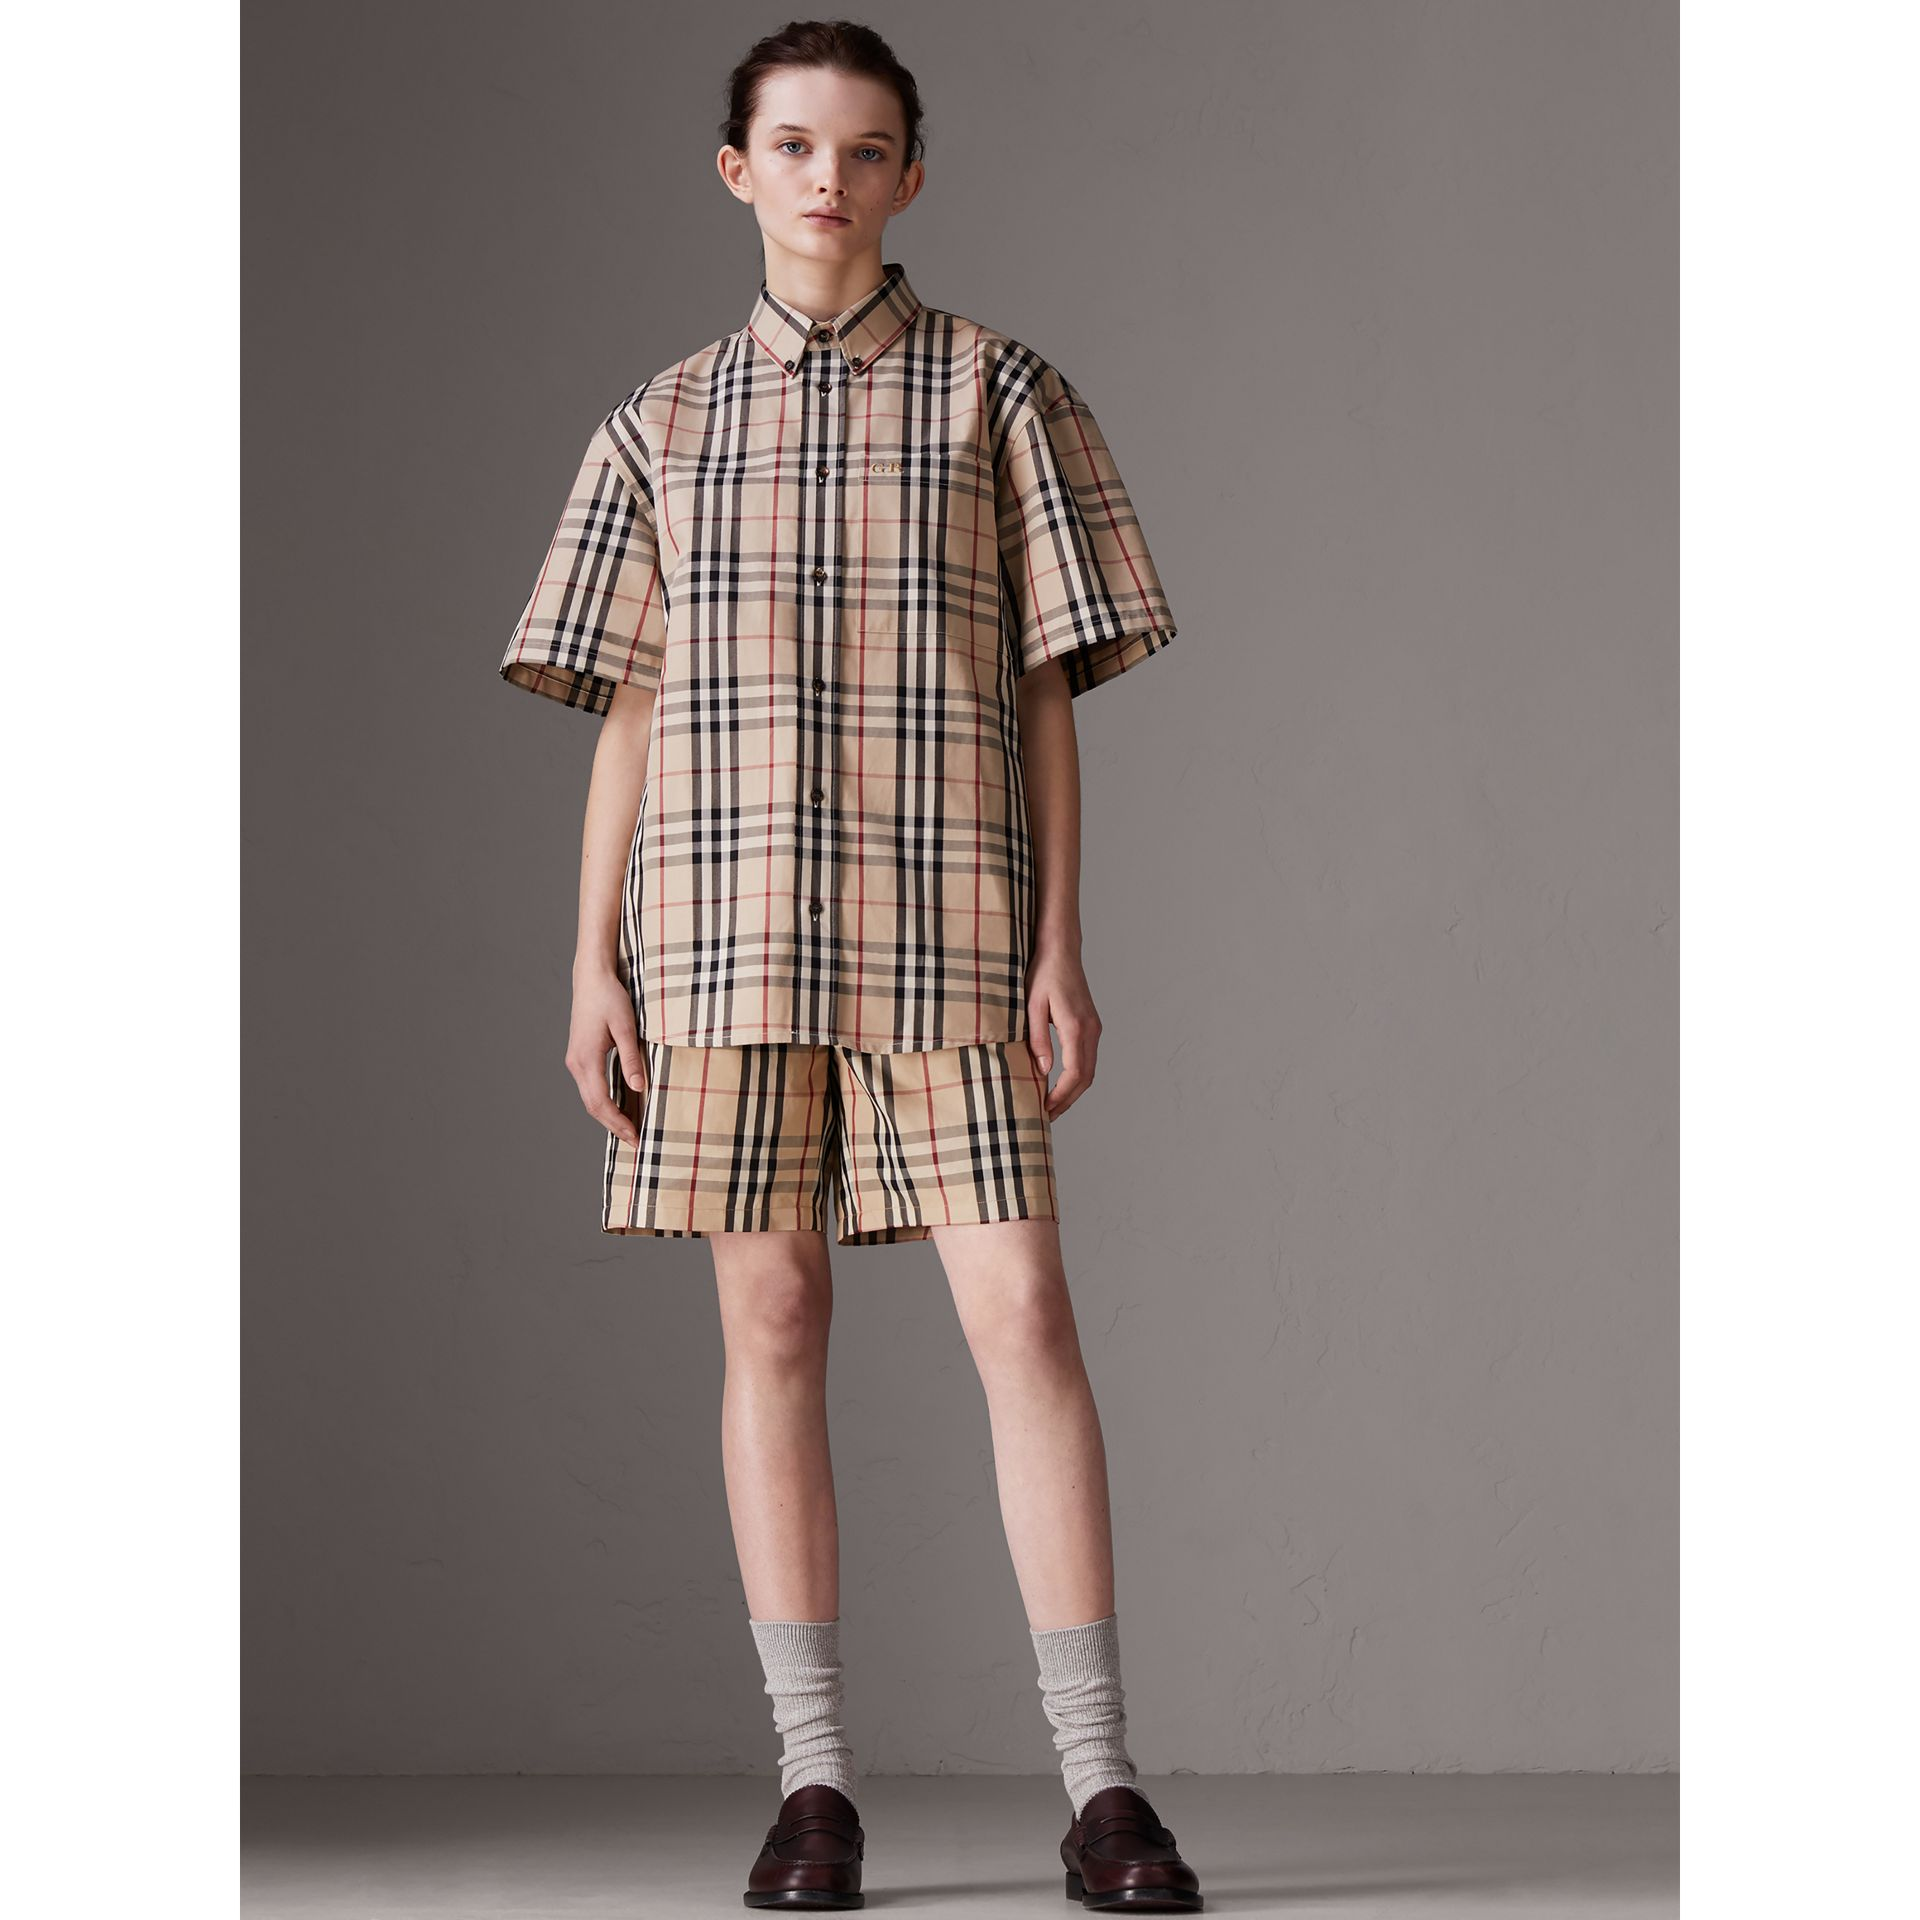 Gosha x Burberry Short-sleeve Check Shirt in Honey | Burberry Hong Kong - gallery image 3